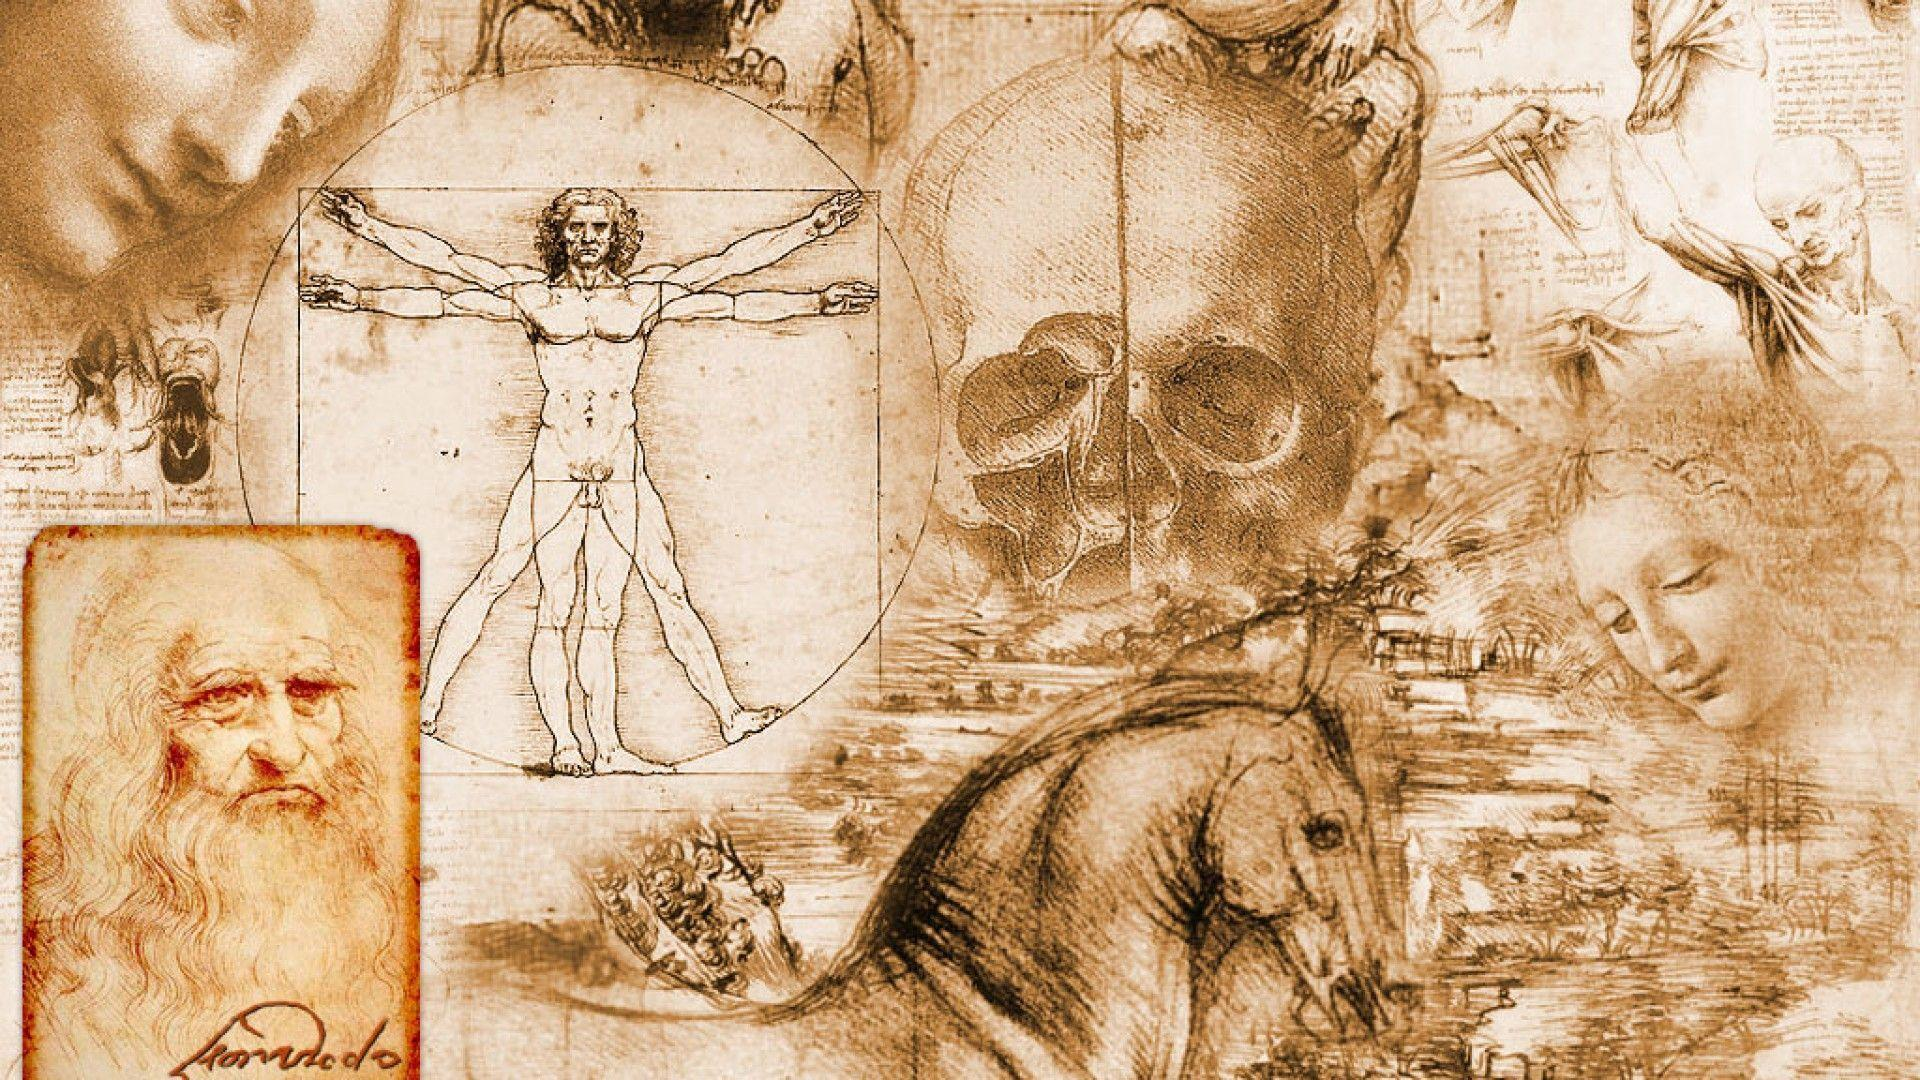 leonardo da vinci science and paintings Posters of mona lisa fine art posters of paintings by leonardo da vinci, are widely available online see also: poster art (c1860-1980) see also.